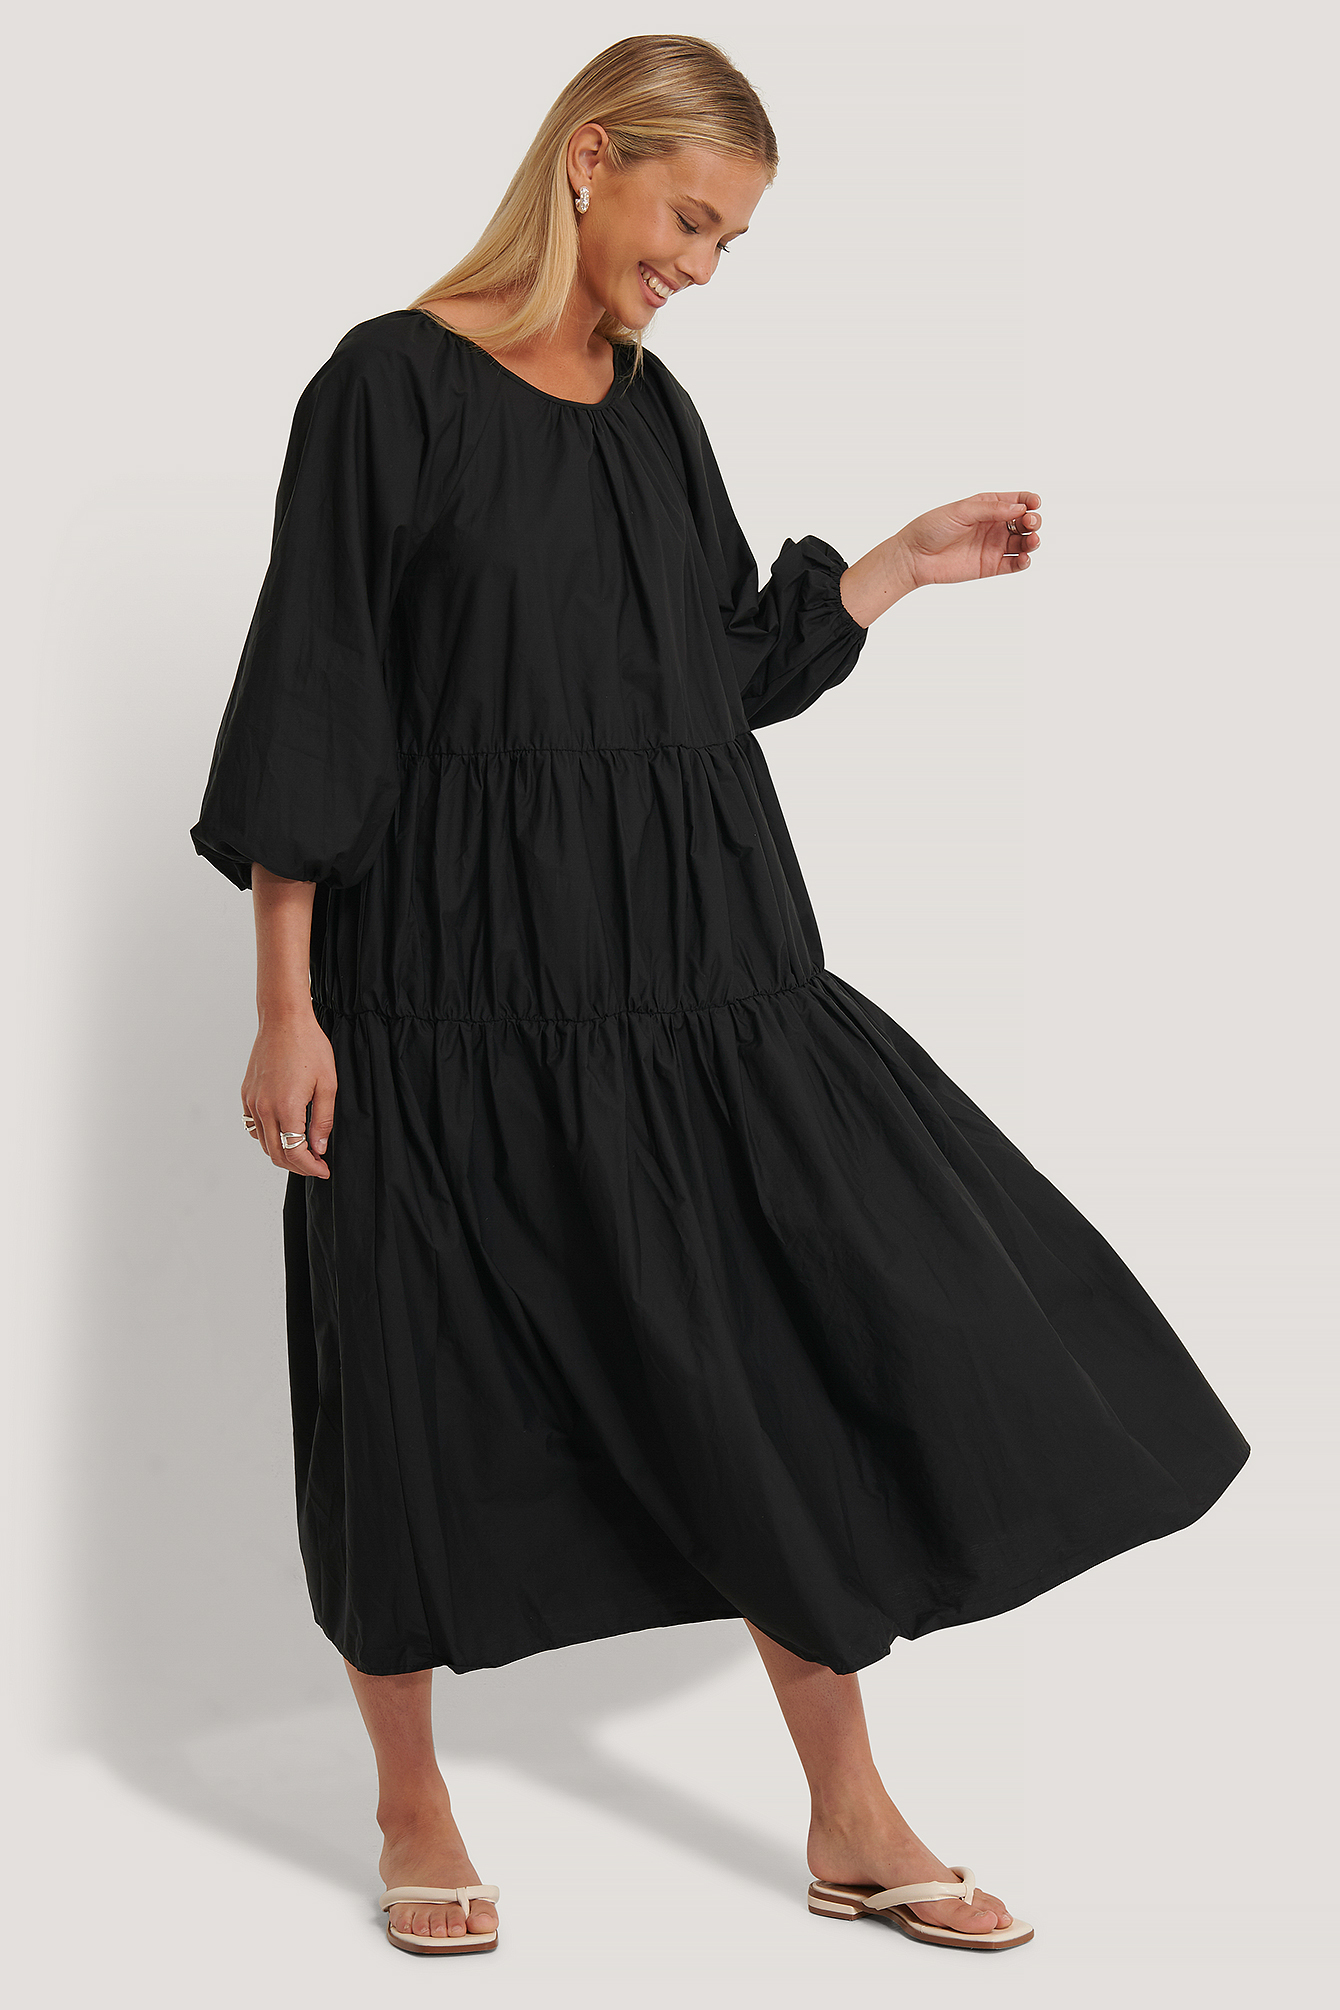 Black Oversized Cotton Dress